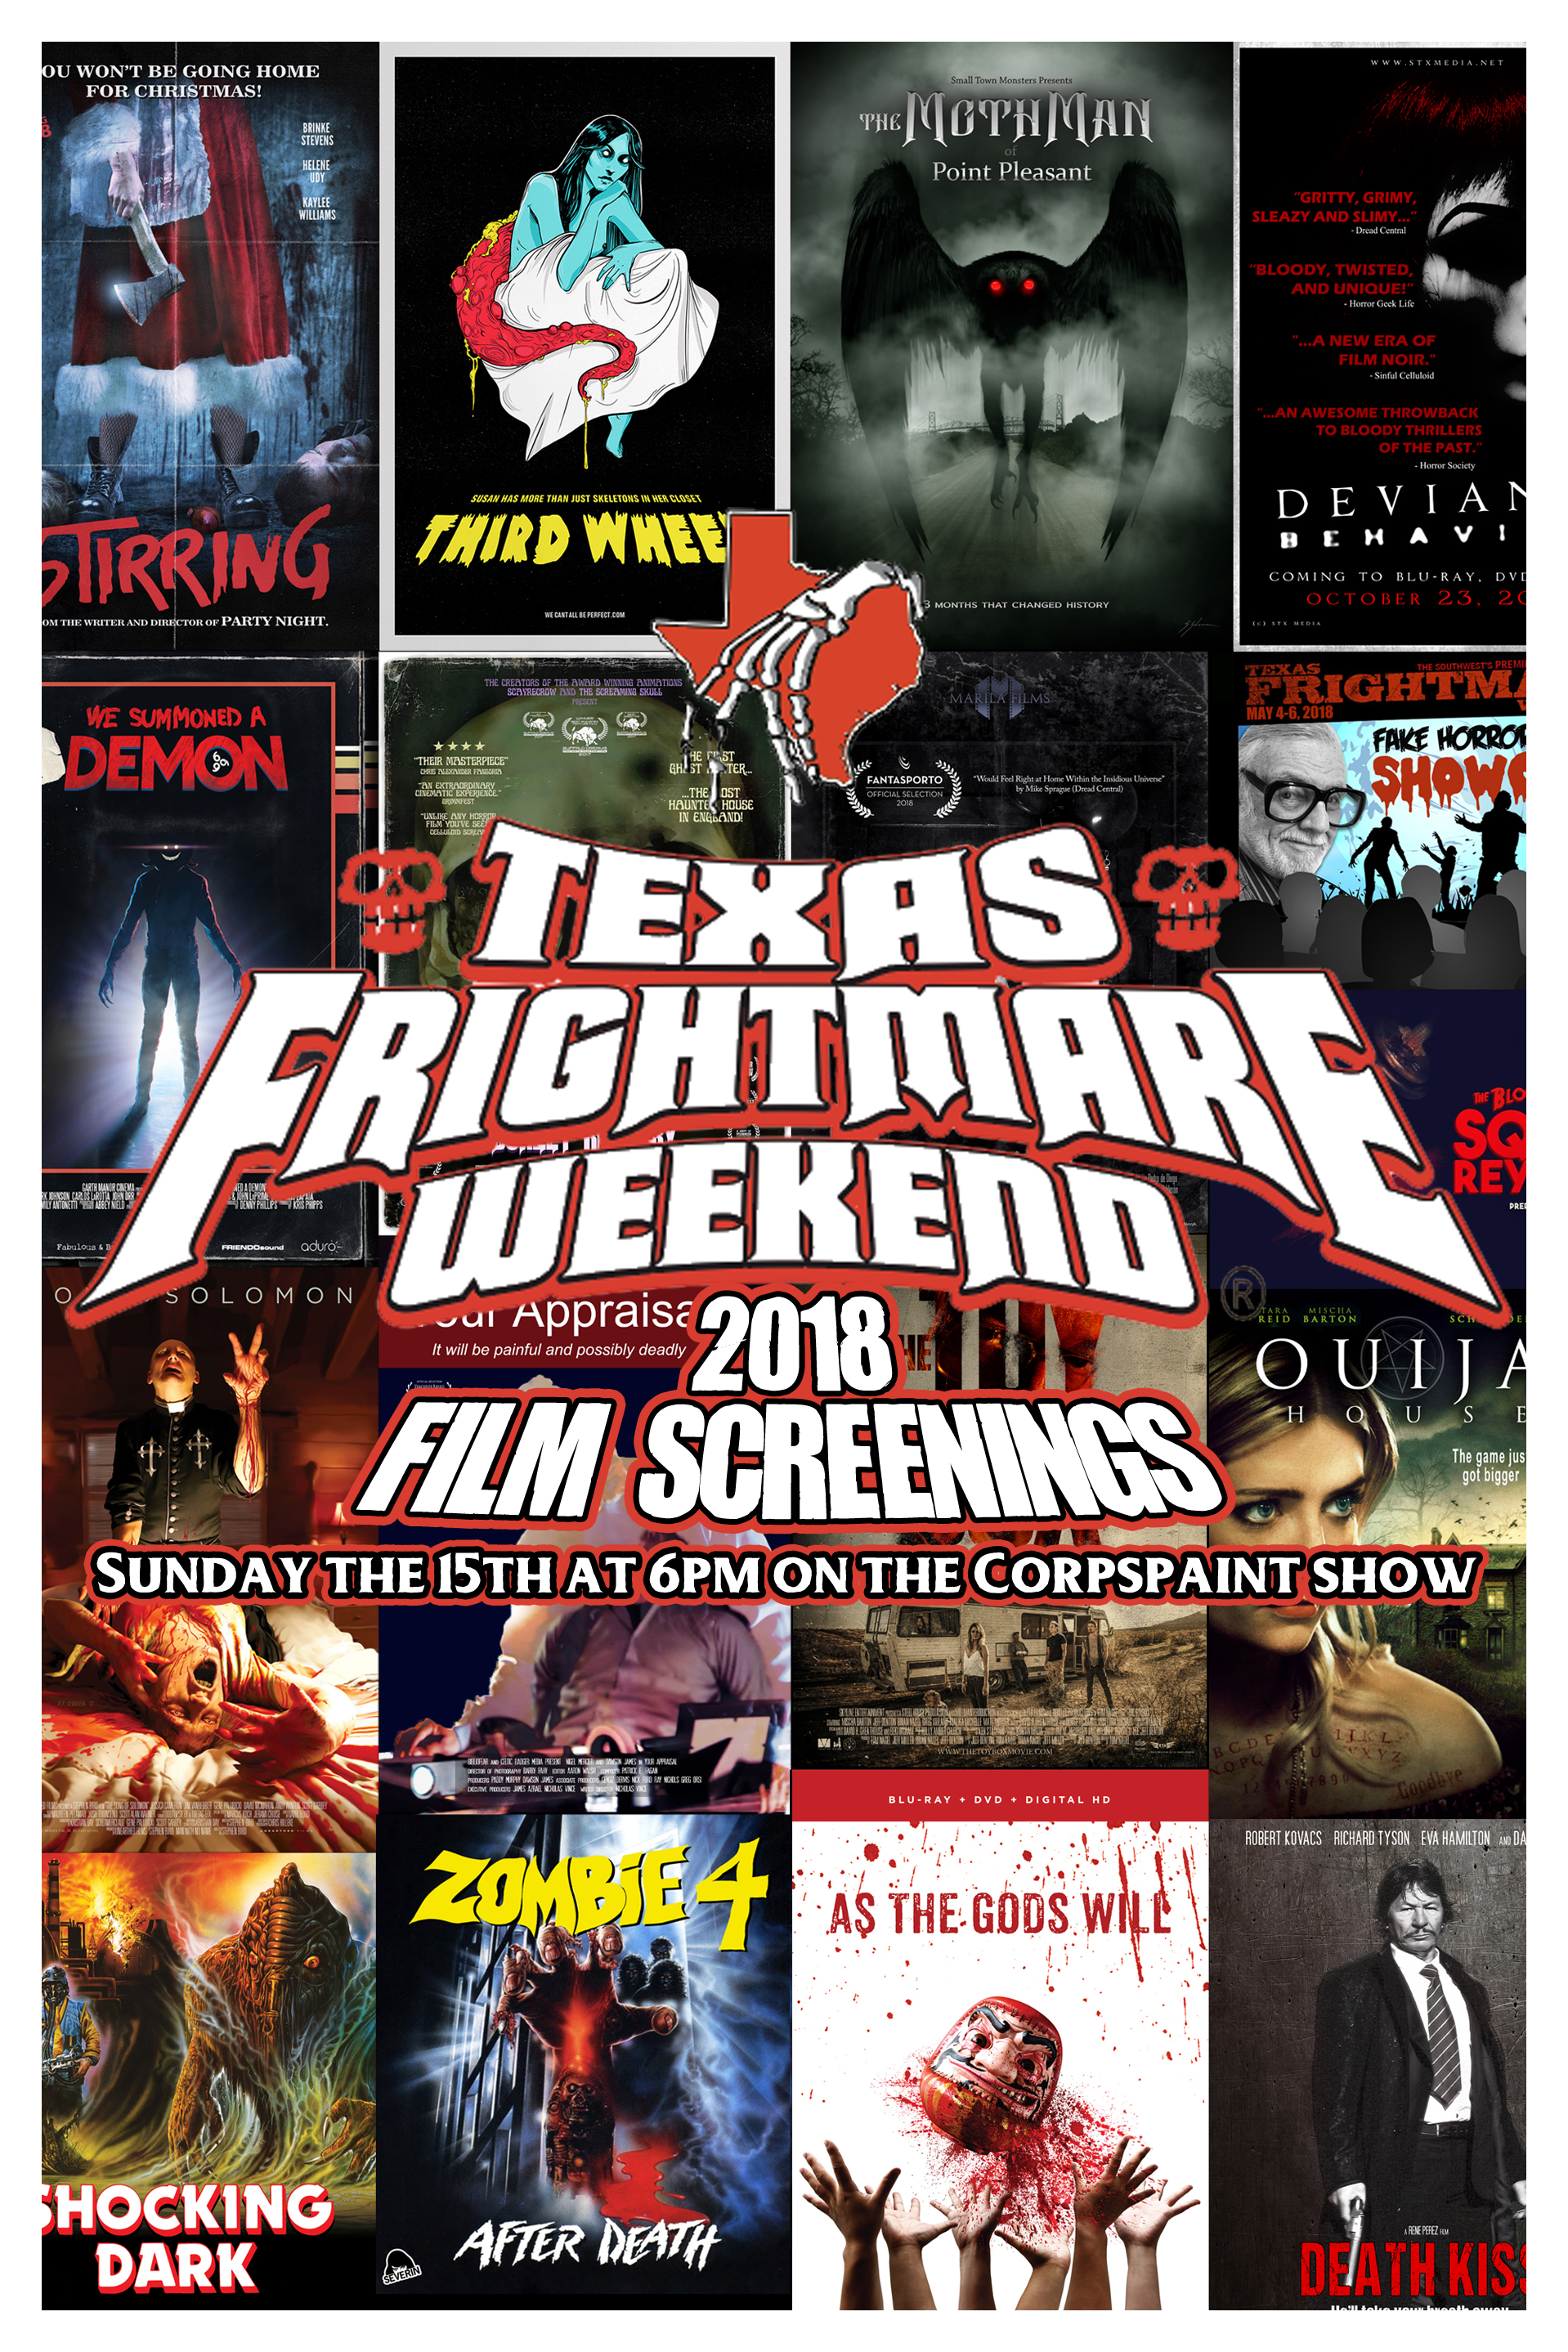 April 15th - Frightmare FLyer review